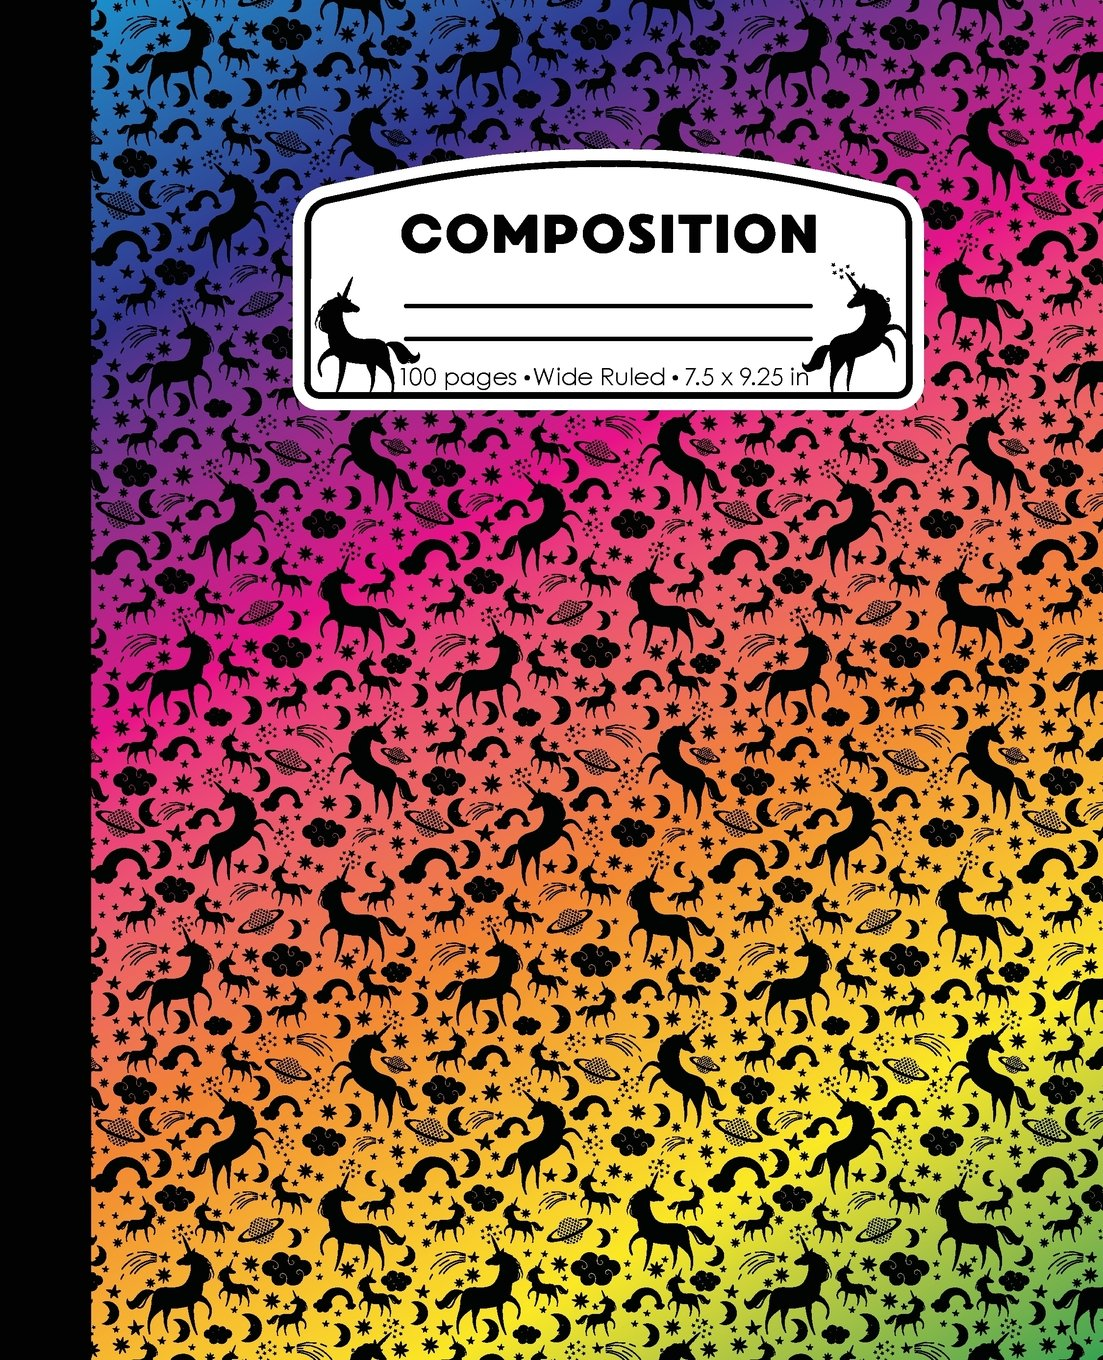 Read Online Composition: Unicorn Rainbow Marble Composition Notebook Wide Ruled 7.5 x 9.25 in, 100 pages book for girls, kids, school, students and teachers (Unicorn Marble Composition Books) pdf